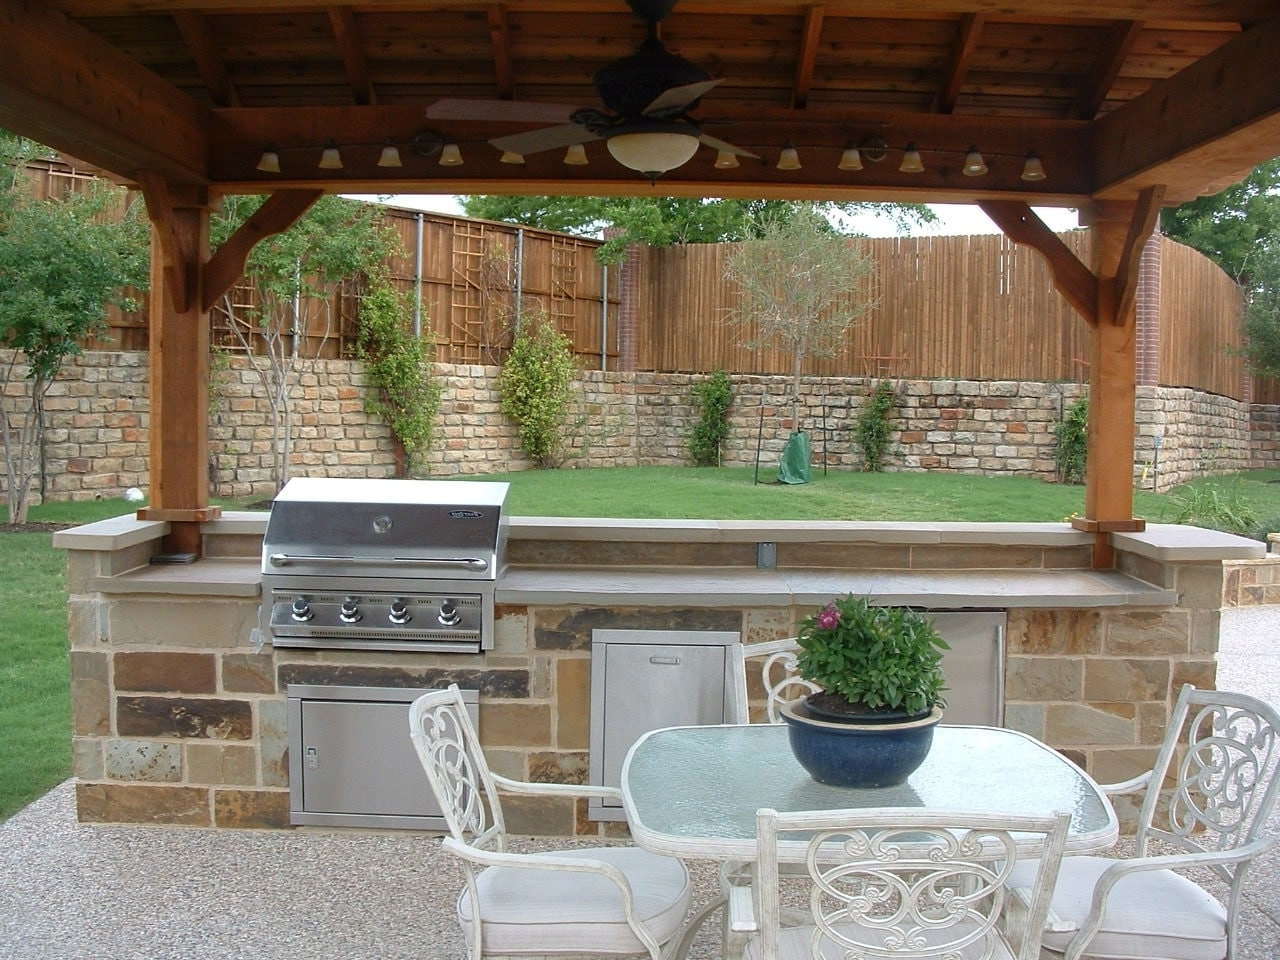 Outdoor Ceiling Fans For Pergola Intended For Well Known Modern Outdoor Ceiling Fan With Light — Sherizampelli Landscape (View 10 of 20)